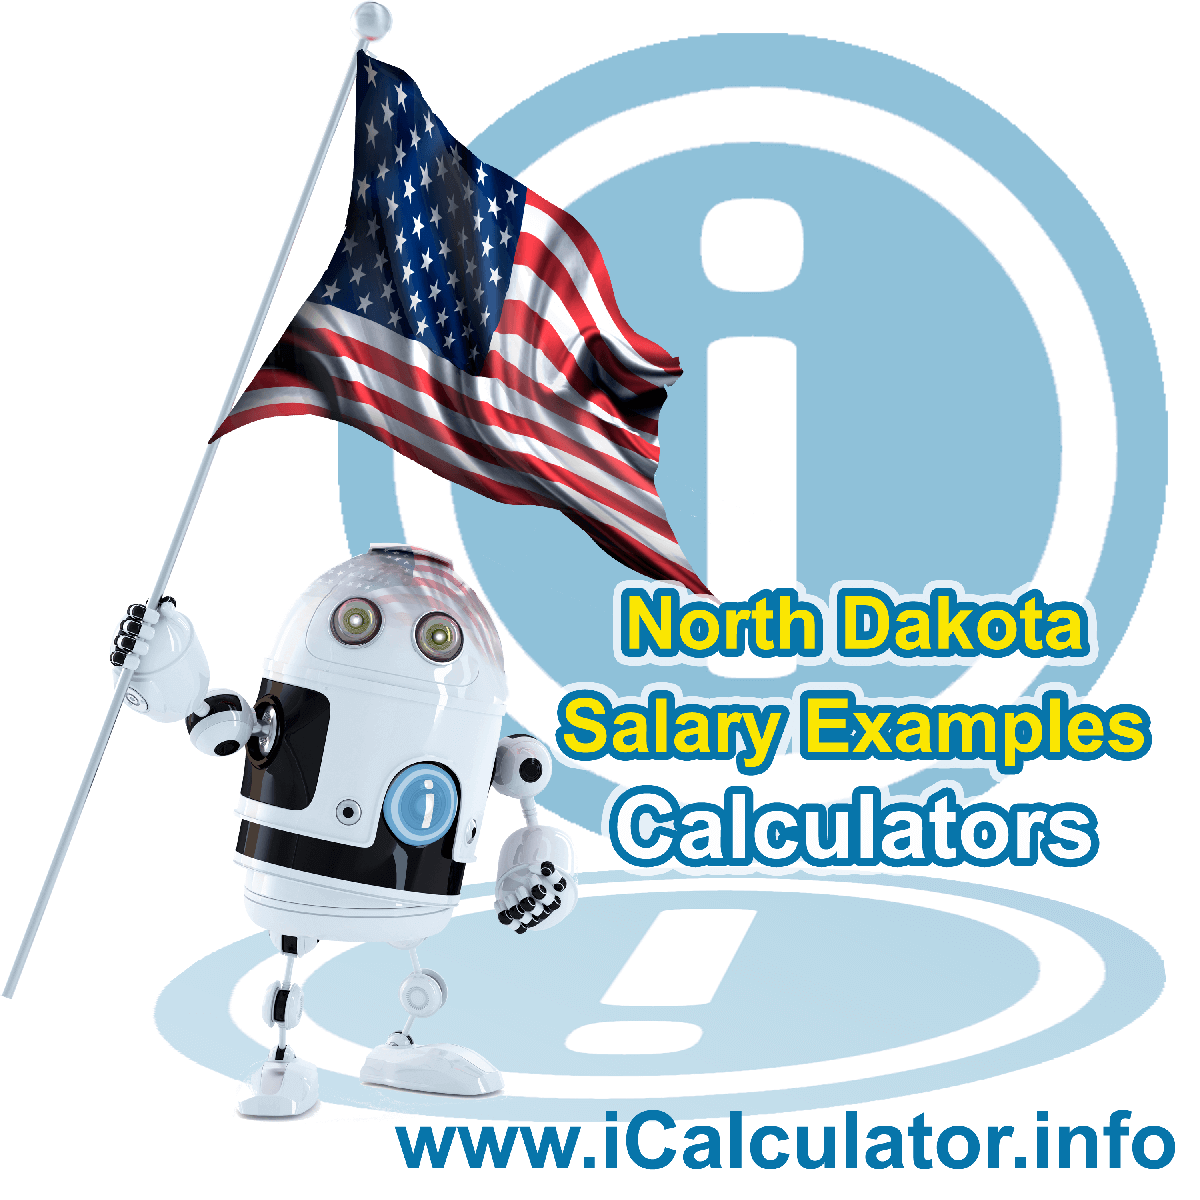 North Dakota Salary Example for $30.00 in 2020 | iCalculator | $30.00 salary example for employee and employer paying North Dakota State tincome taxes. Detailed salary after tax calculation including North Dakota State Tax, Federal State Tax, Medicare Deductions, Social Security, Capital Gains and other income tax and salary deductions complete with supporting North Dakota state tax tables